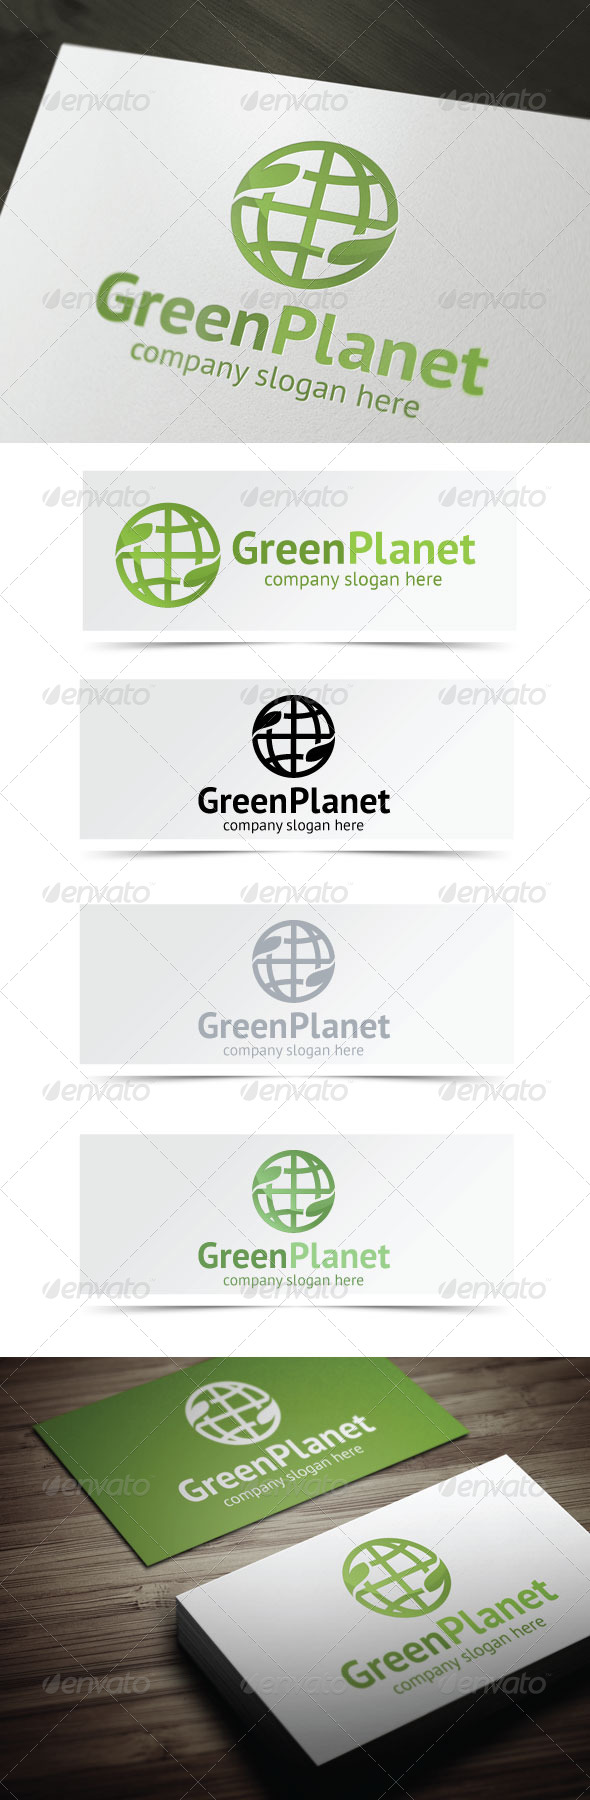 Green Planet - Nature Logo Templates